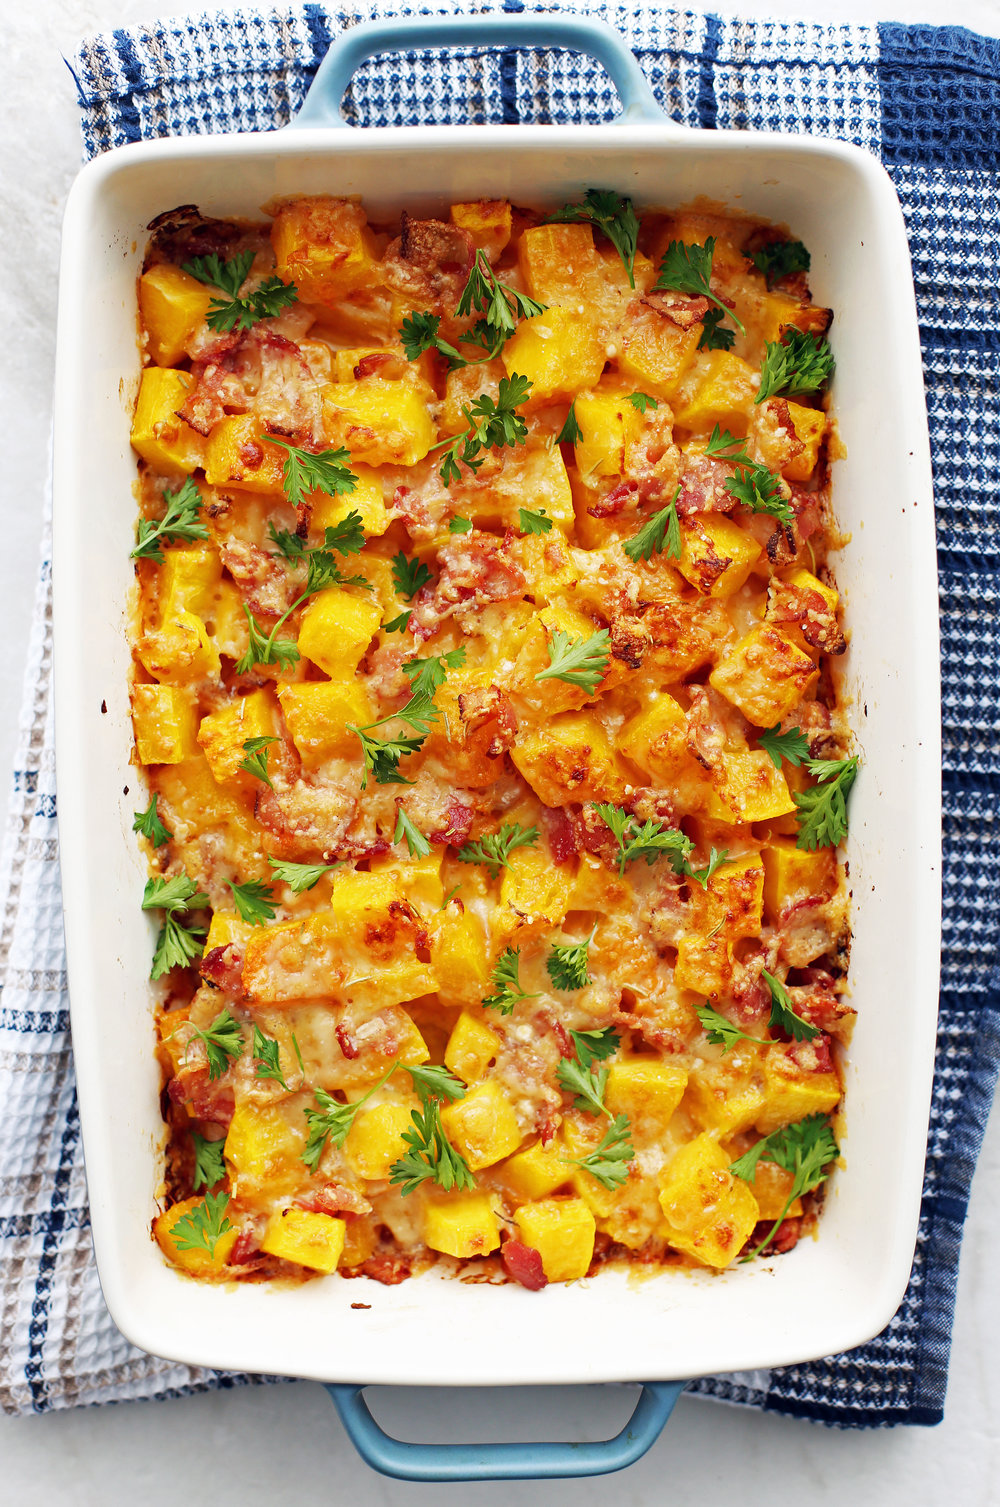 Baked Bacon Cheese Butternut Squash garnished with parsley in a large baking dish.